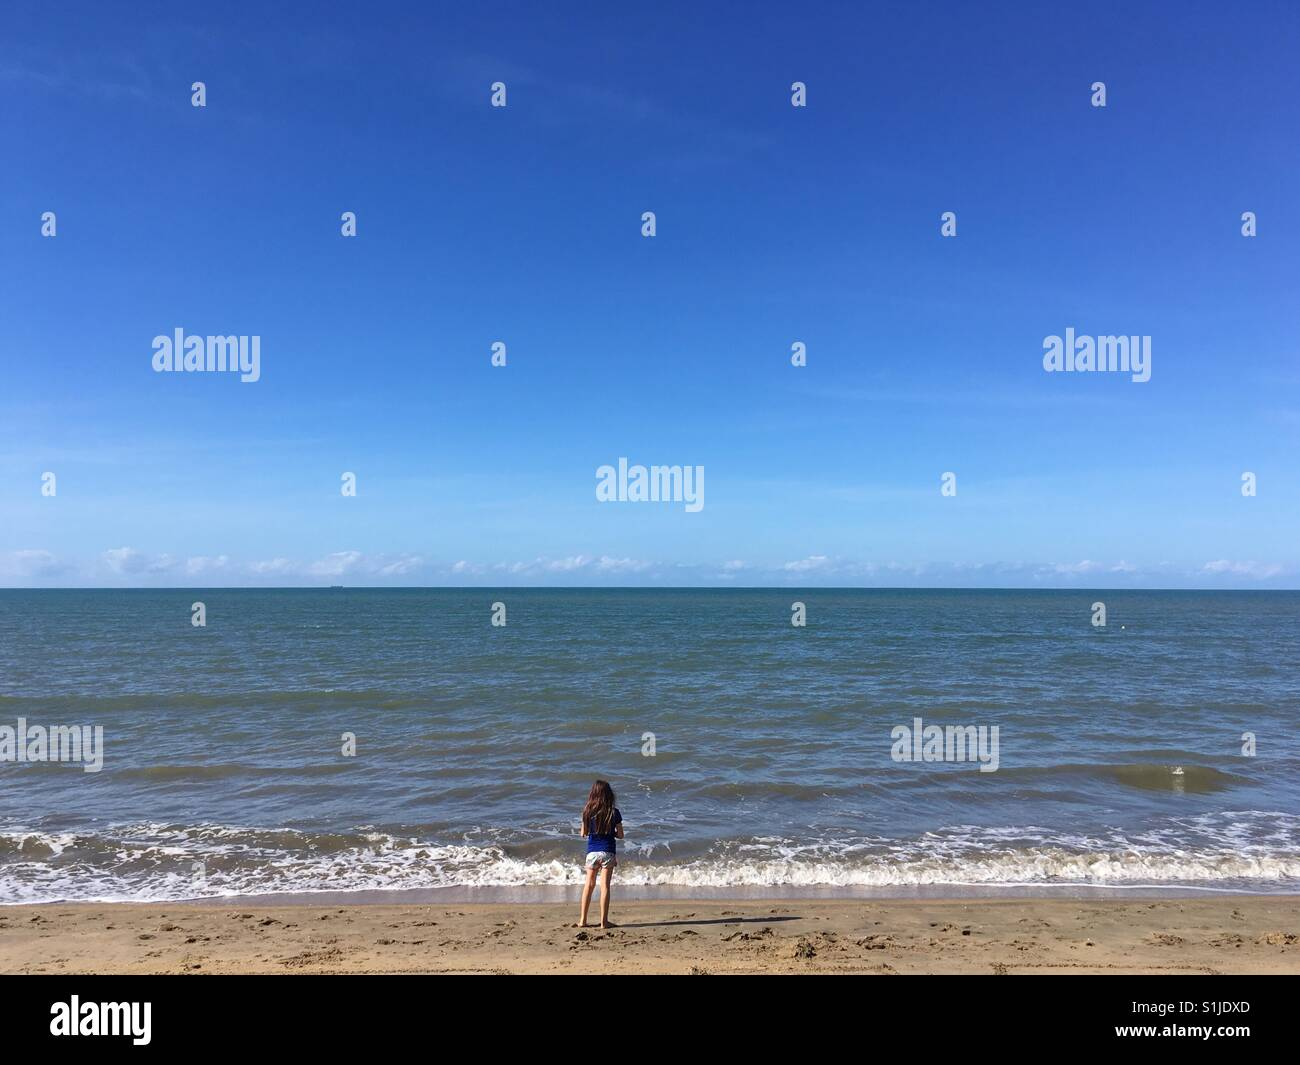 Little girl staring at the horizon on a beach. - Stock Image